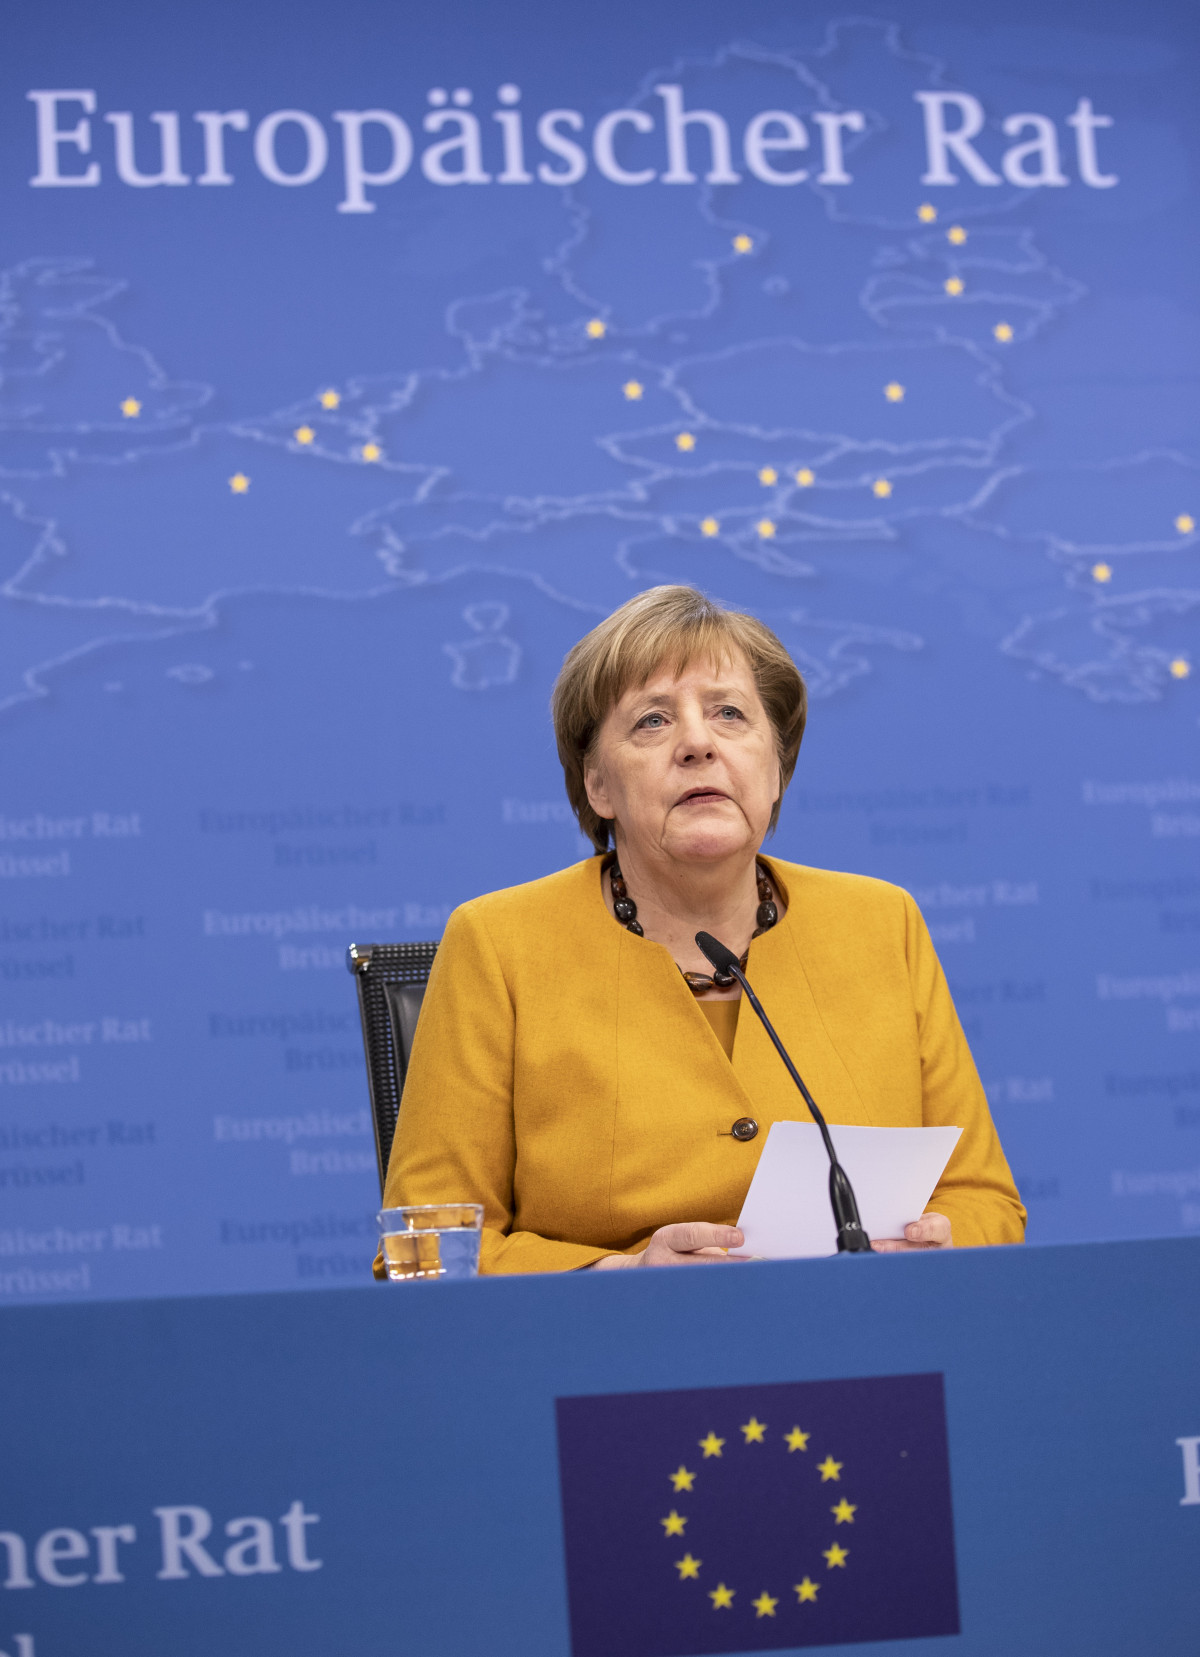 Photo shows German chancellor Angela Merkel at press conference after European Council summit in March 2019. Photo: European Union 2019.